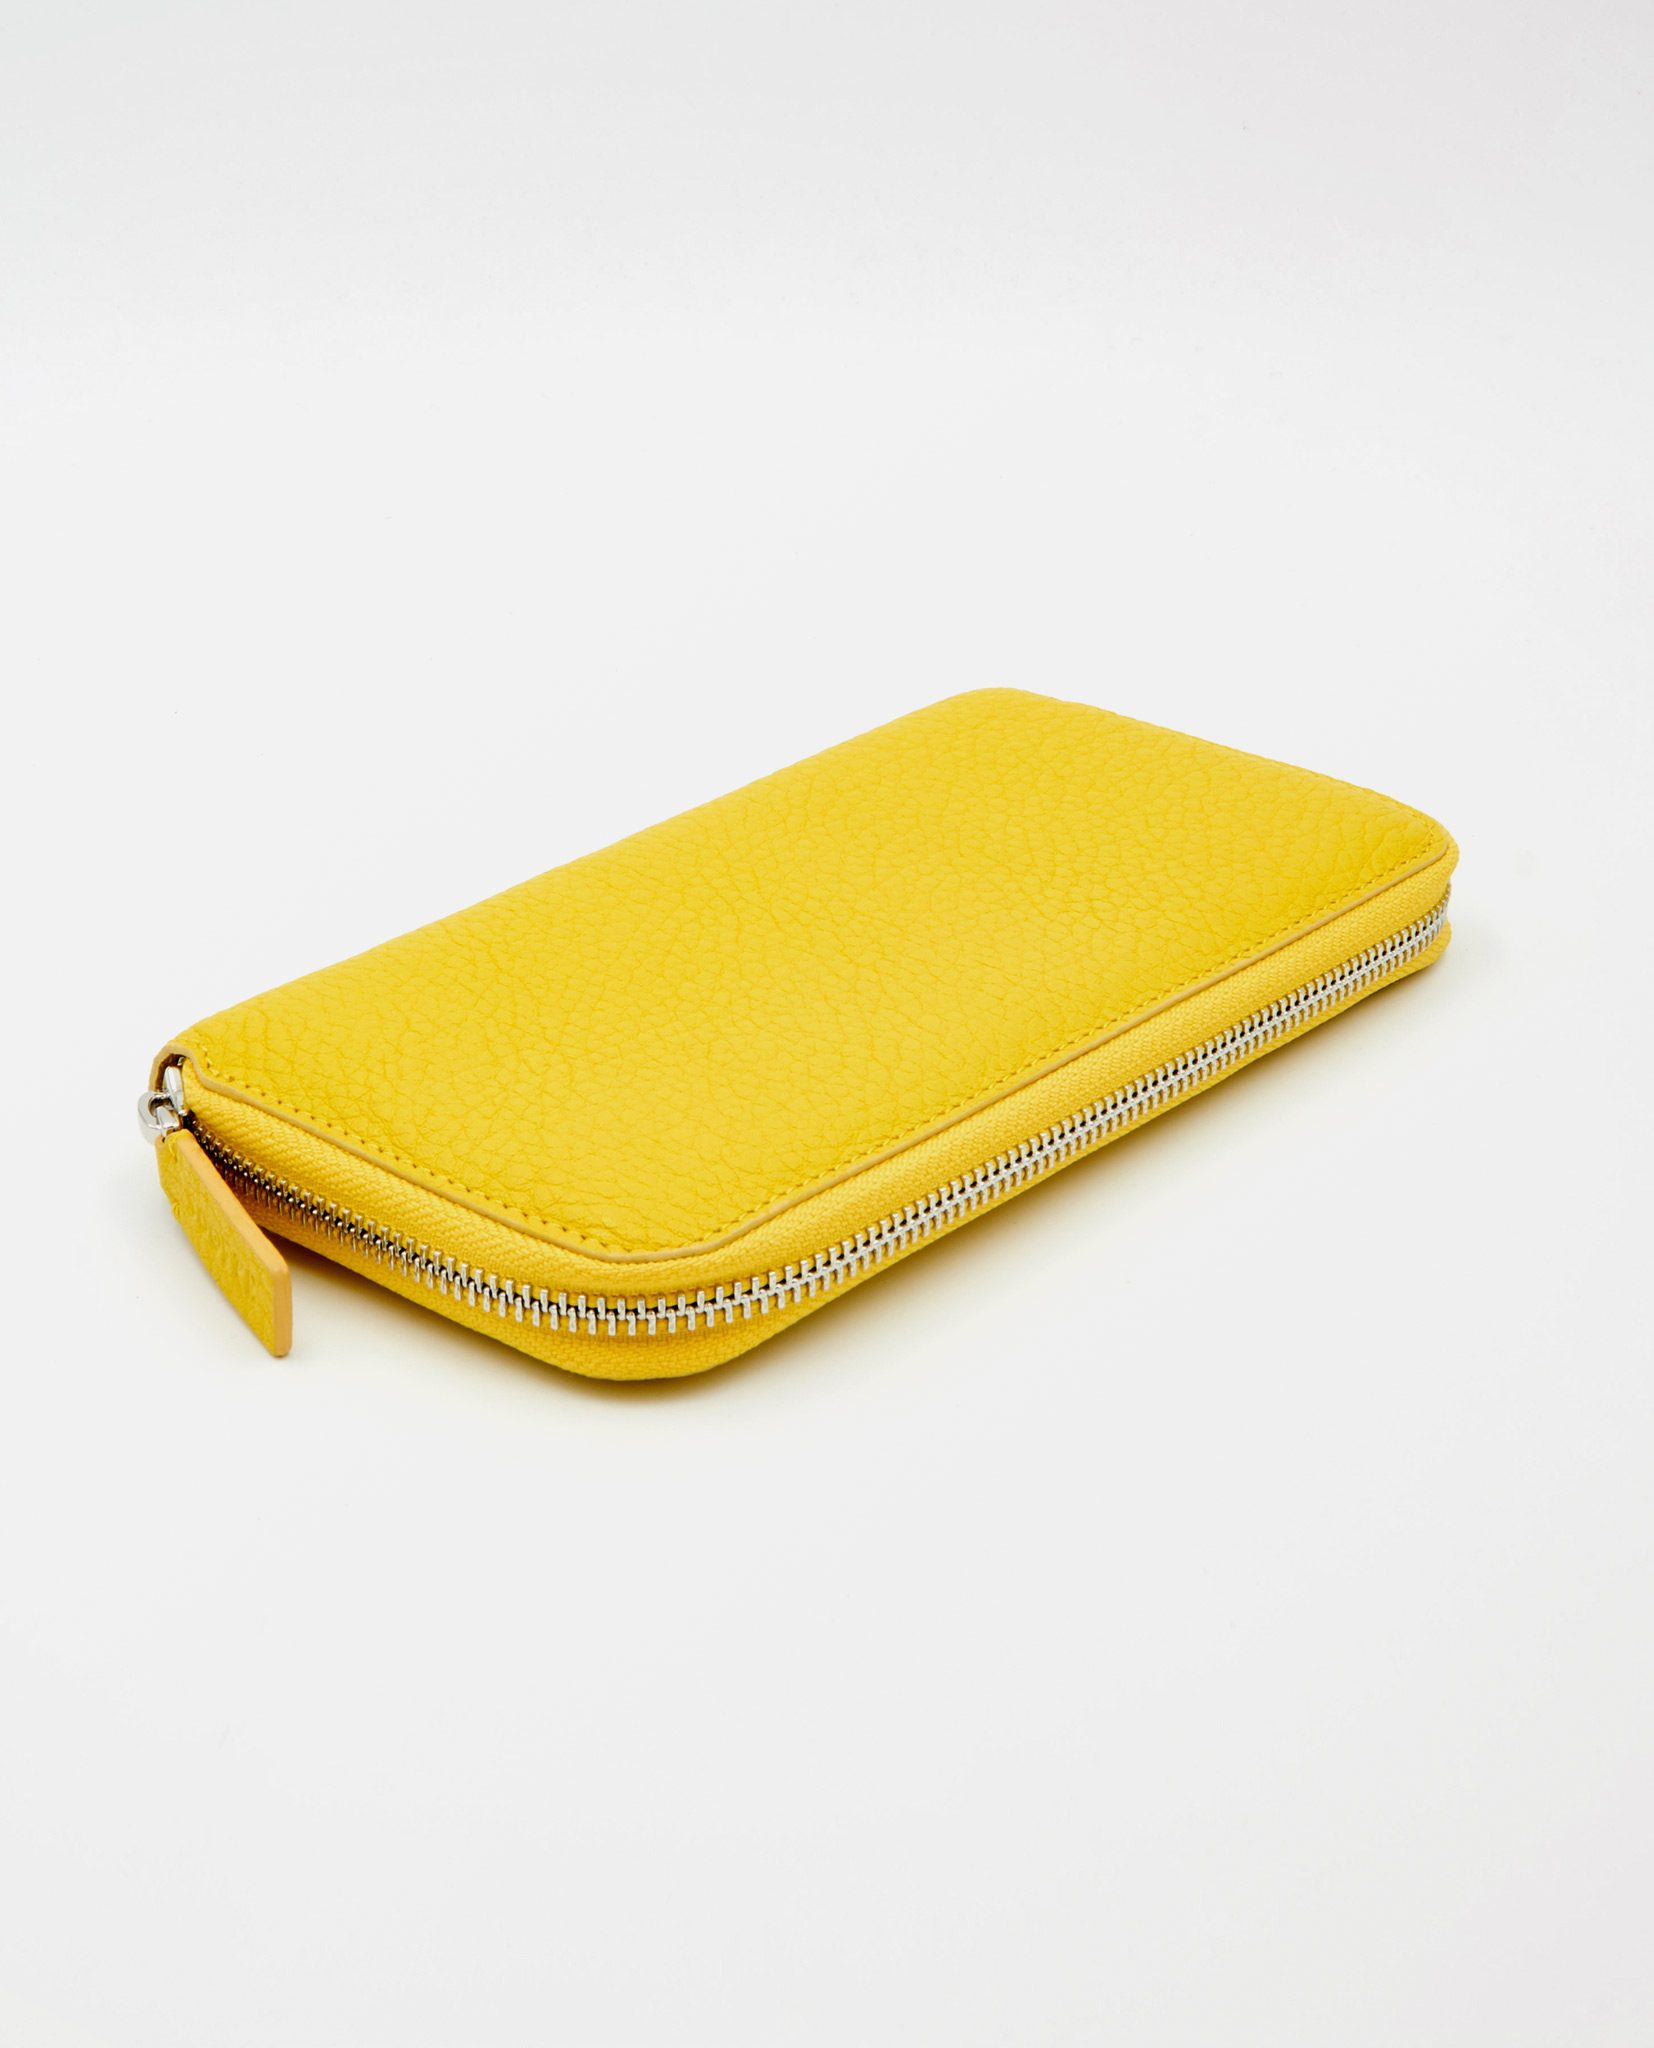 Soofre_Womens-Zip-Wallet-Yellow-Dove-Grey_1